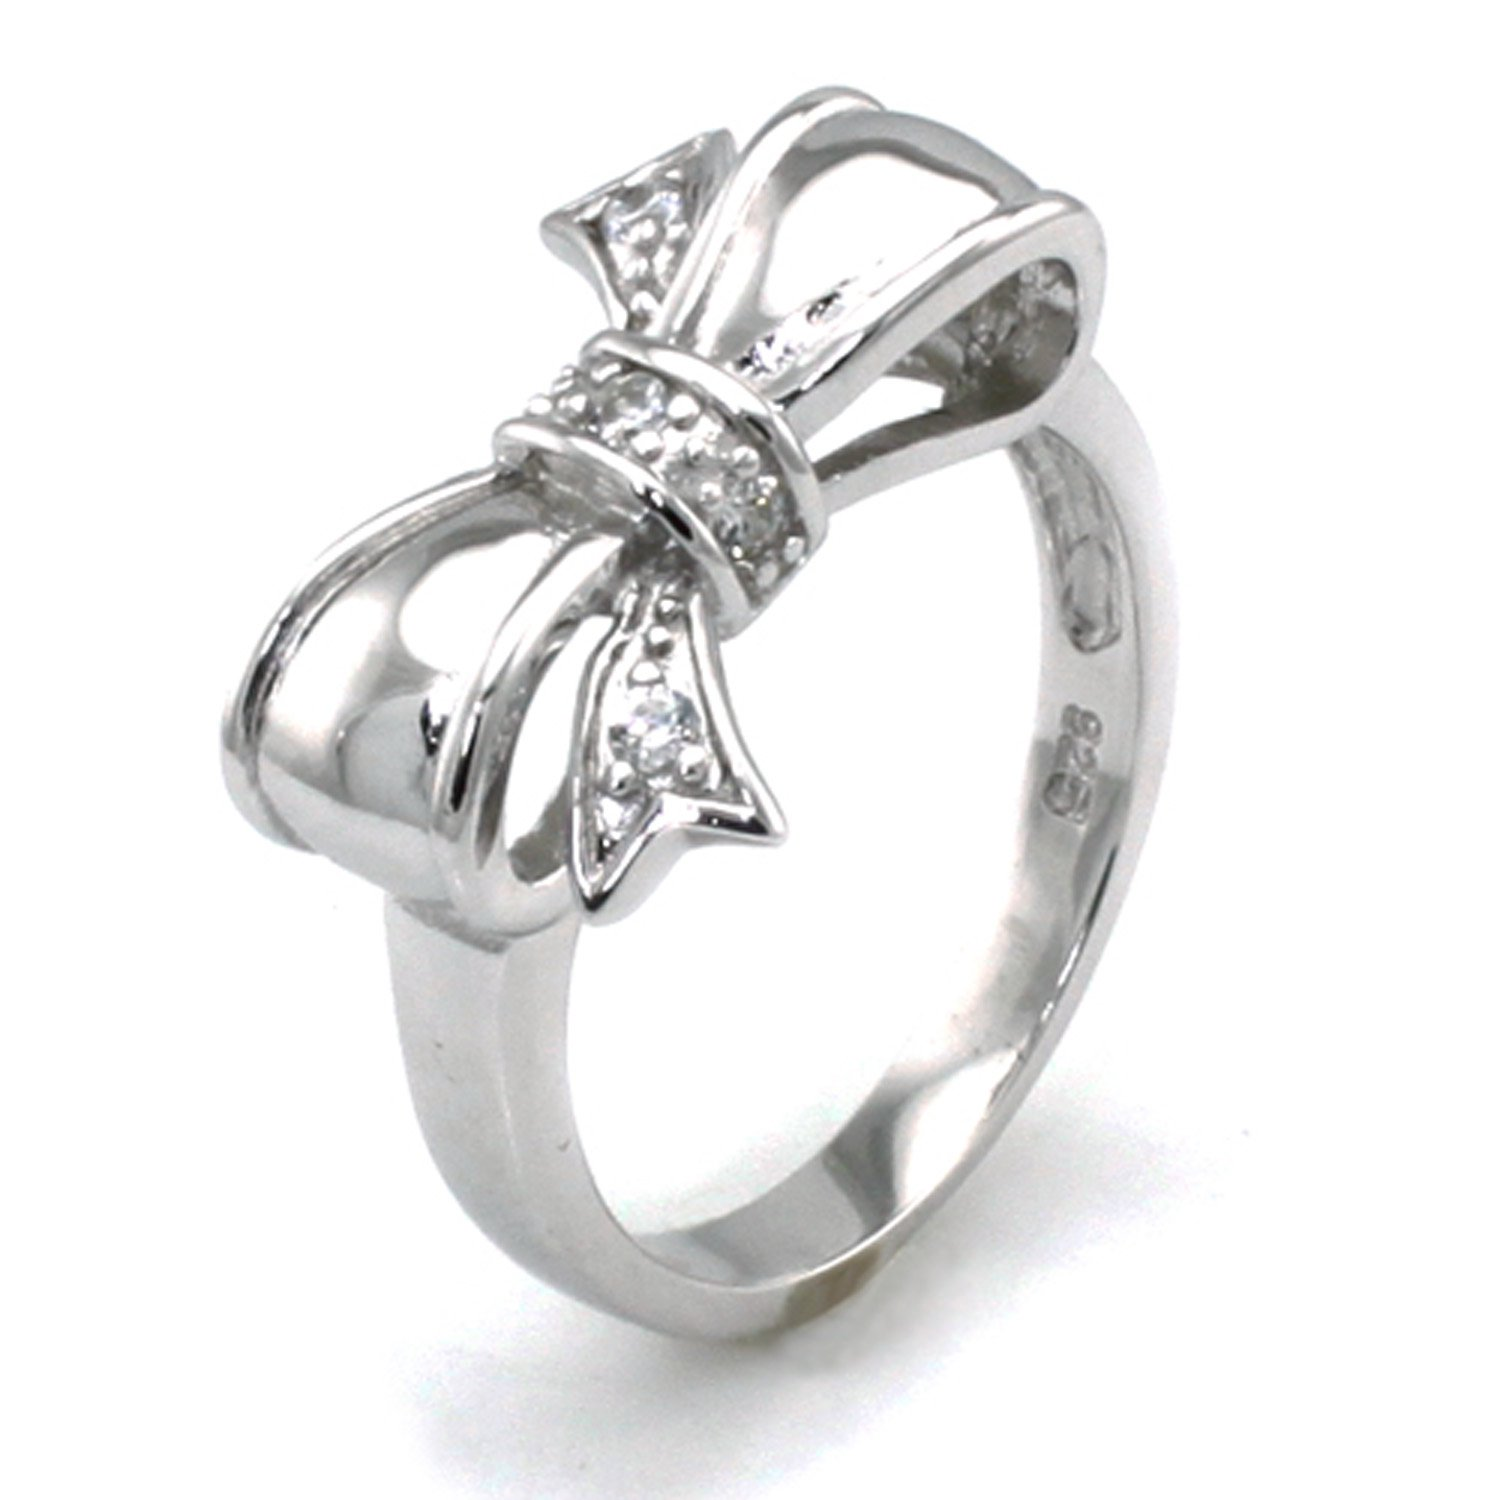 rings infinity bow zirconia wedding jewellery silver co sterling amazon uk ring dp cubic